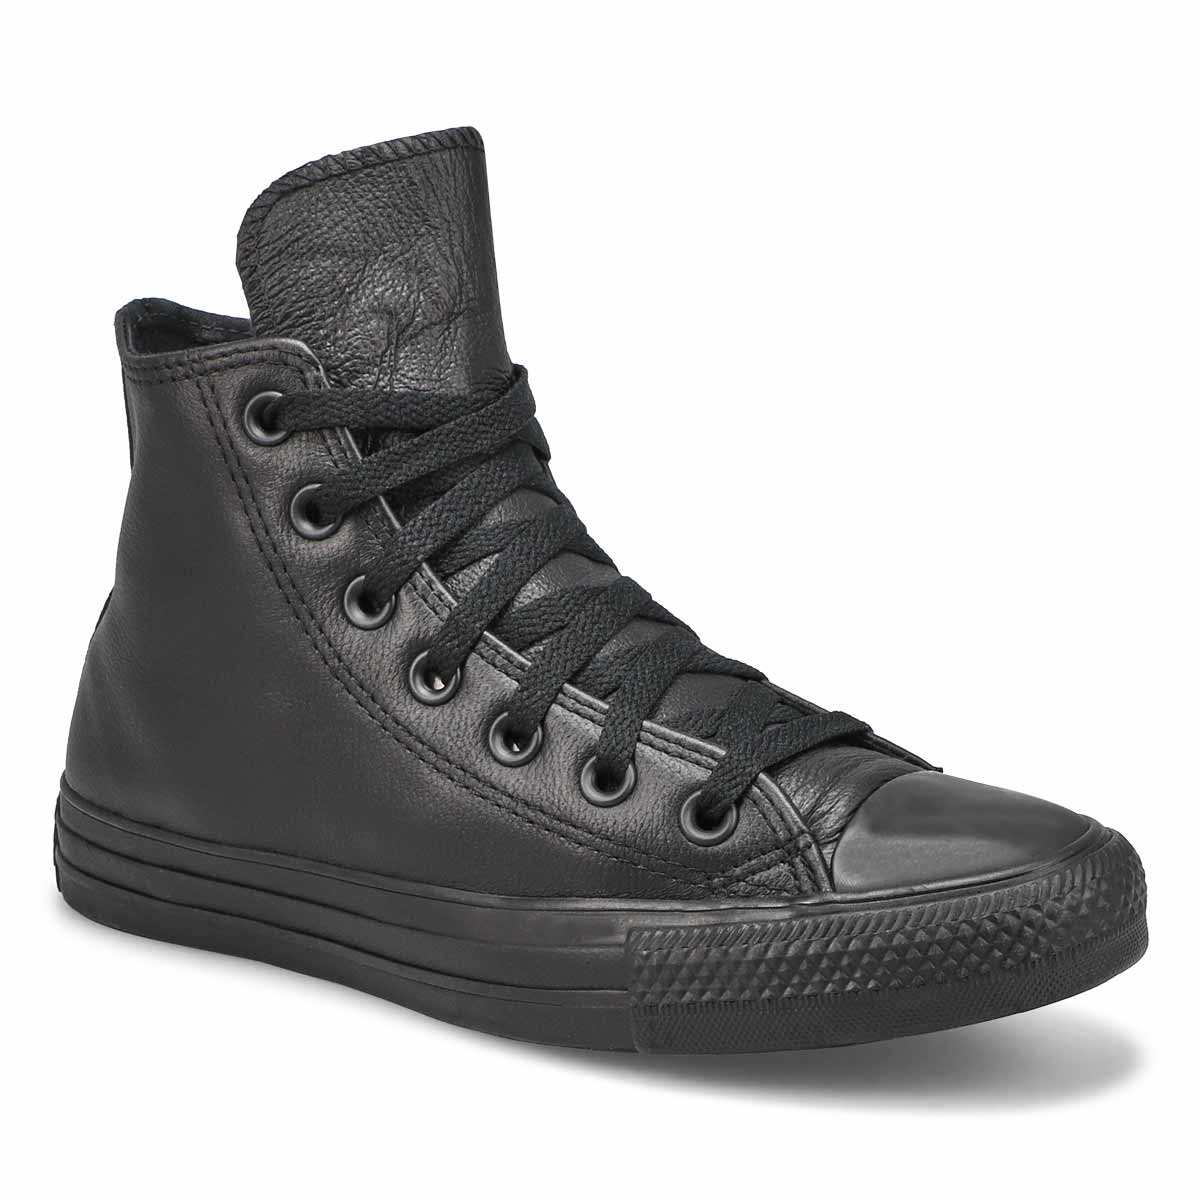 Women's CT ALL STAR LEATHER black mono hi tops